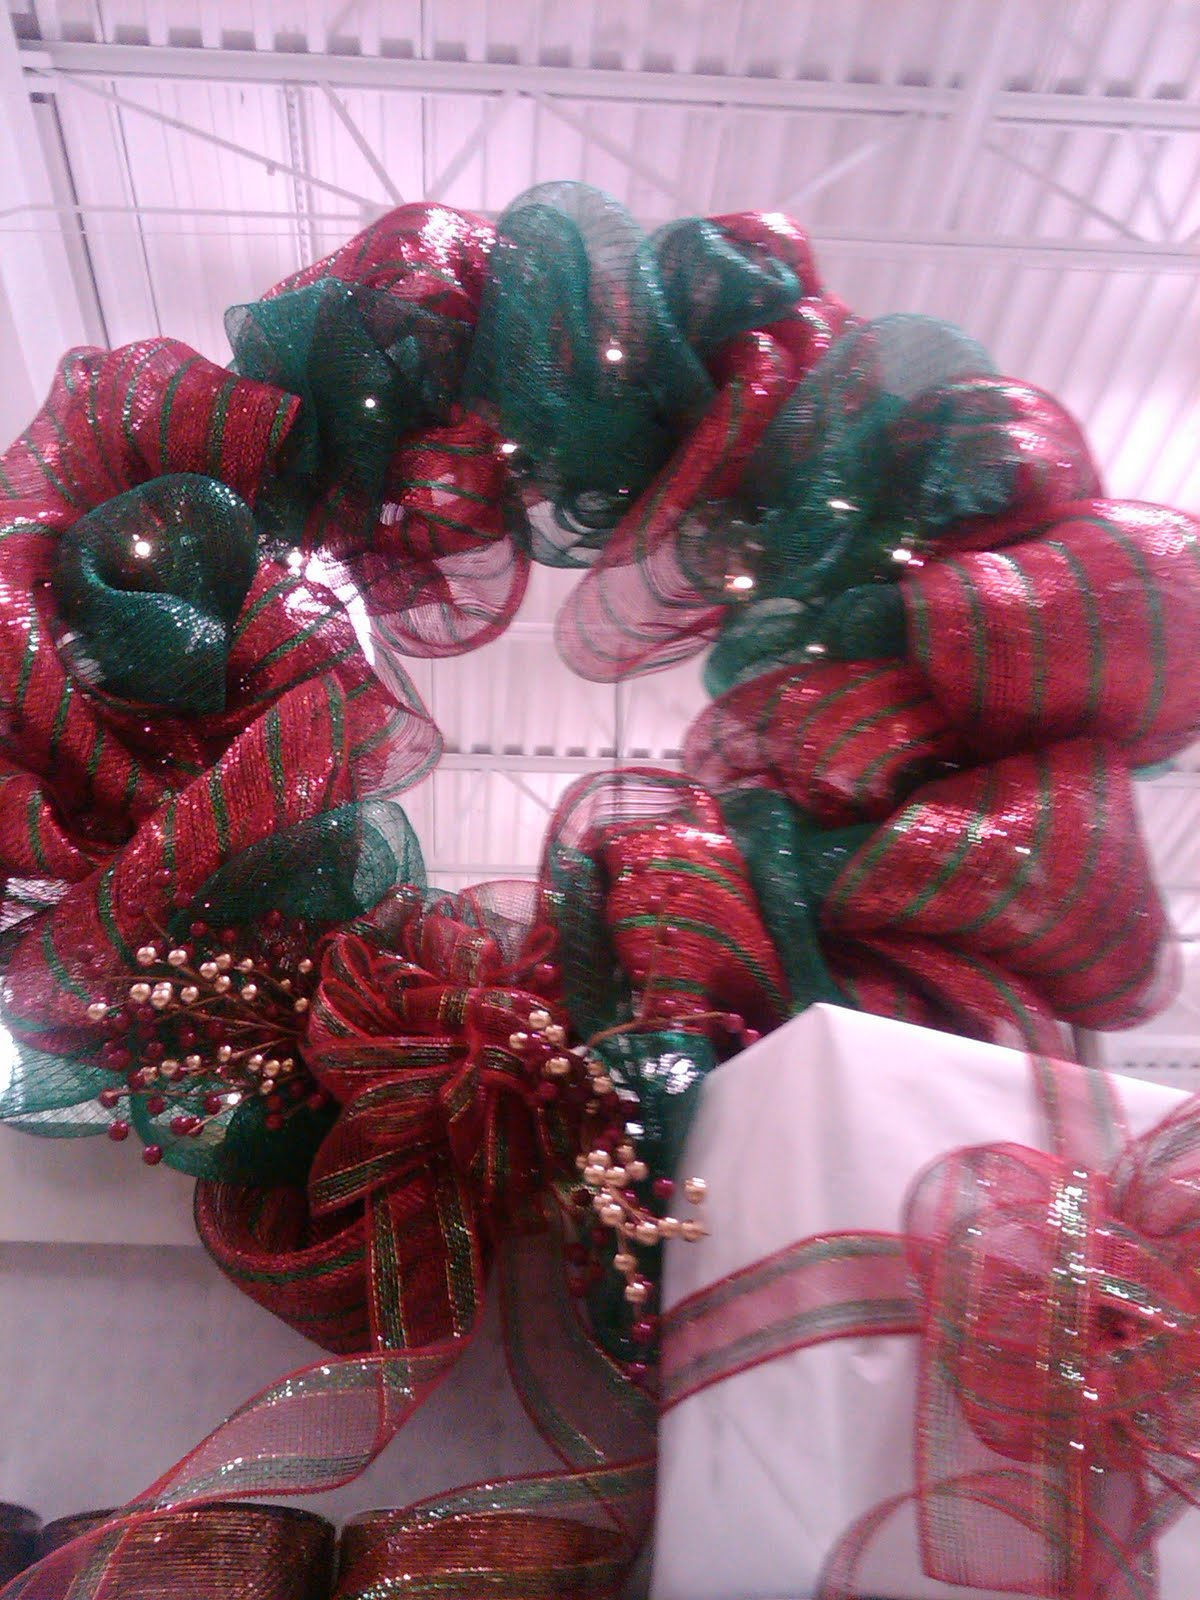 Geo Mesh Wreath Ideas http://sierrascrafts.blogspot.com/2010/12/geo-mesh-wreath.html